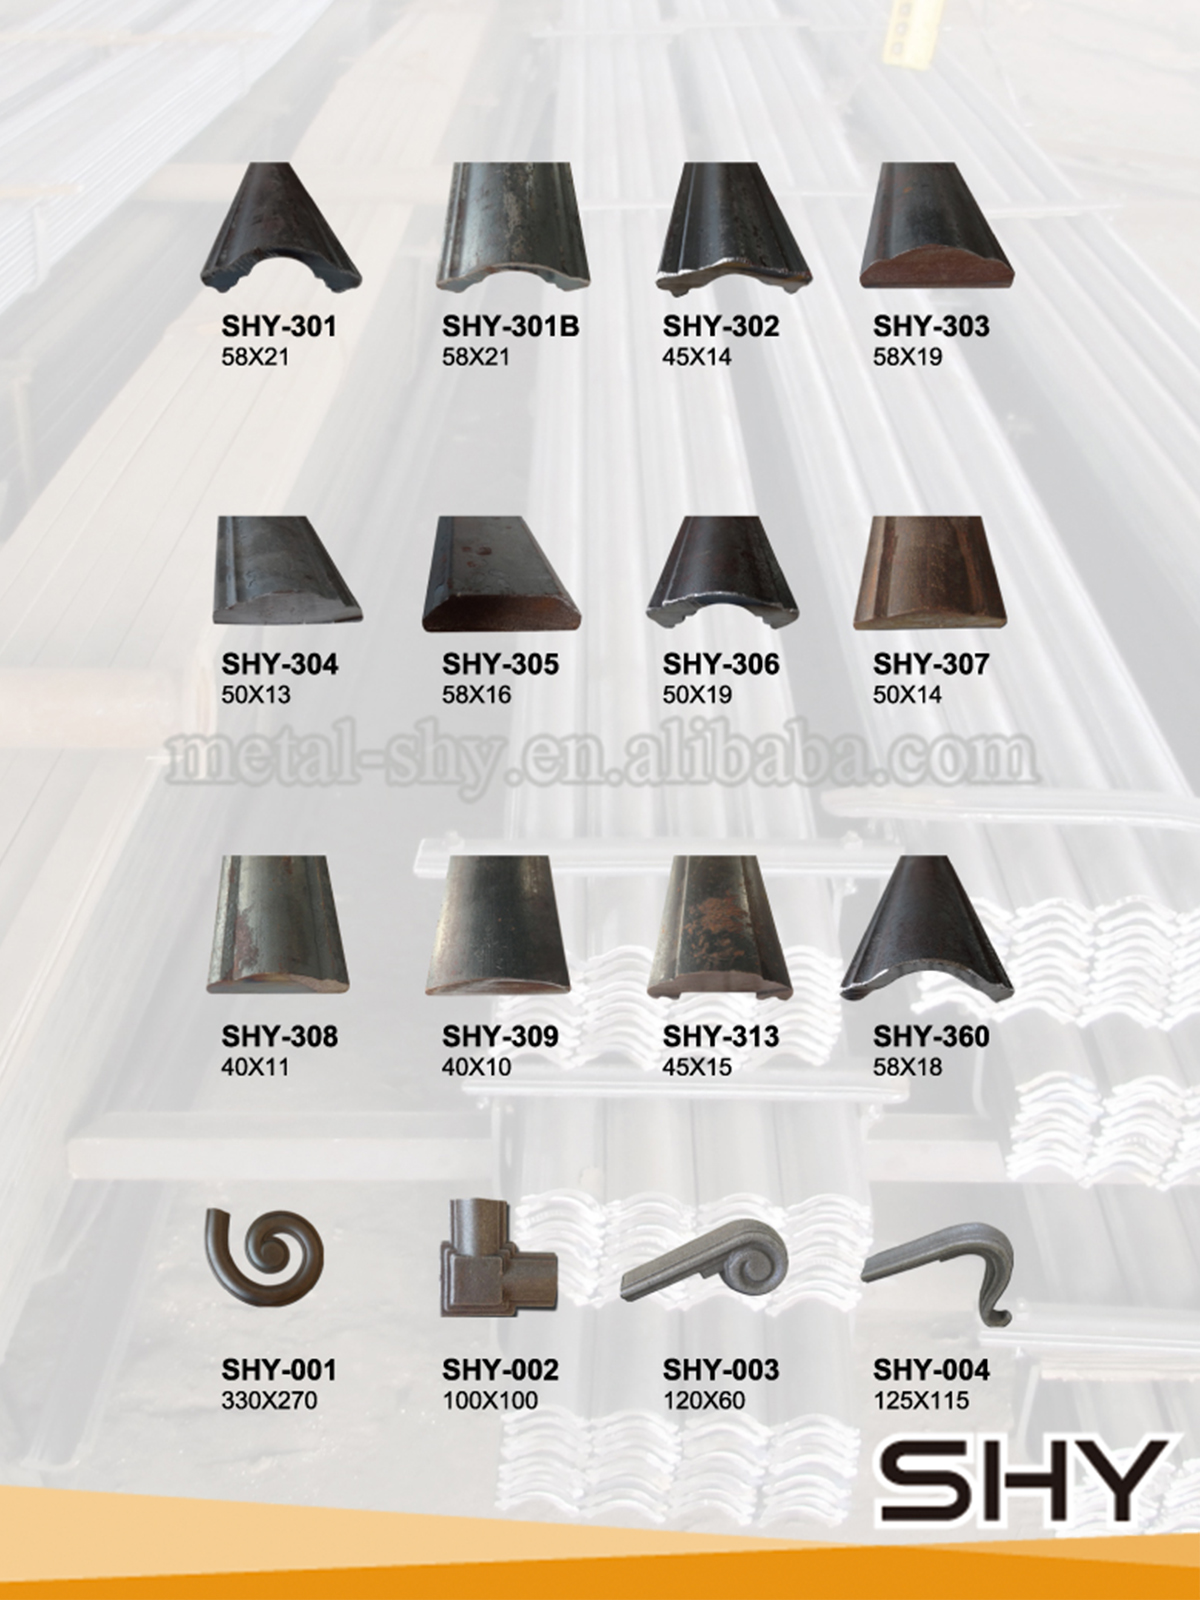 Top-selling Powder Coated Indoor Wrought Iron Handrail